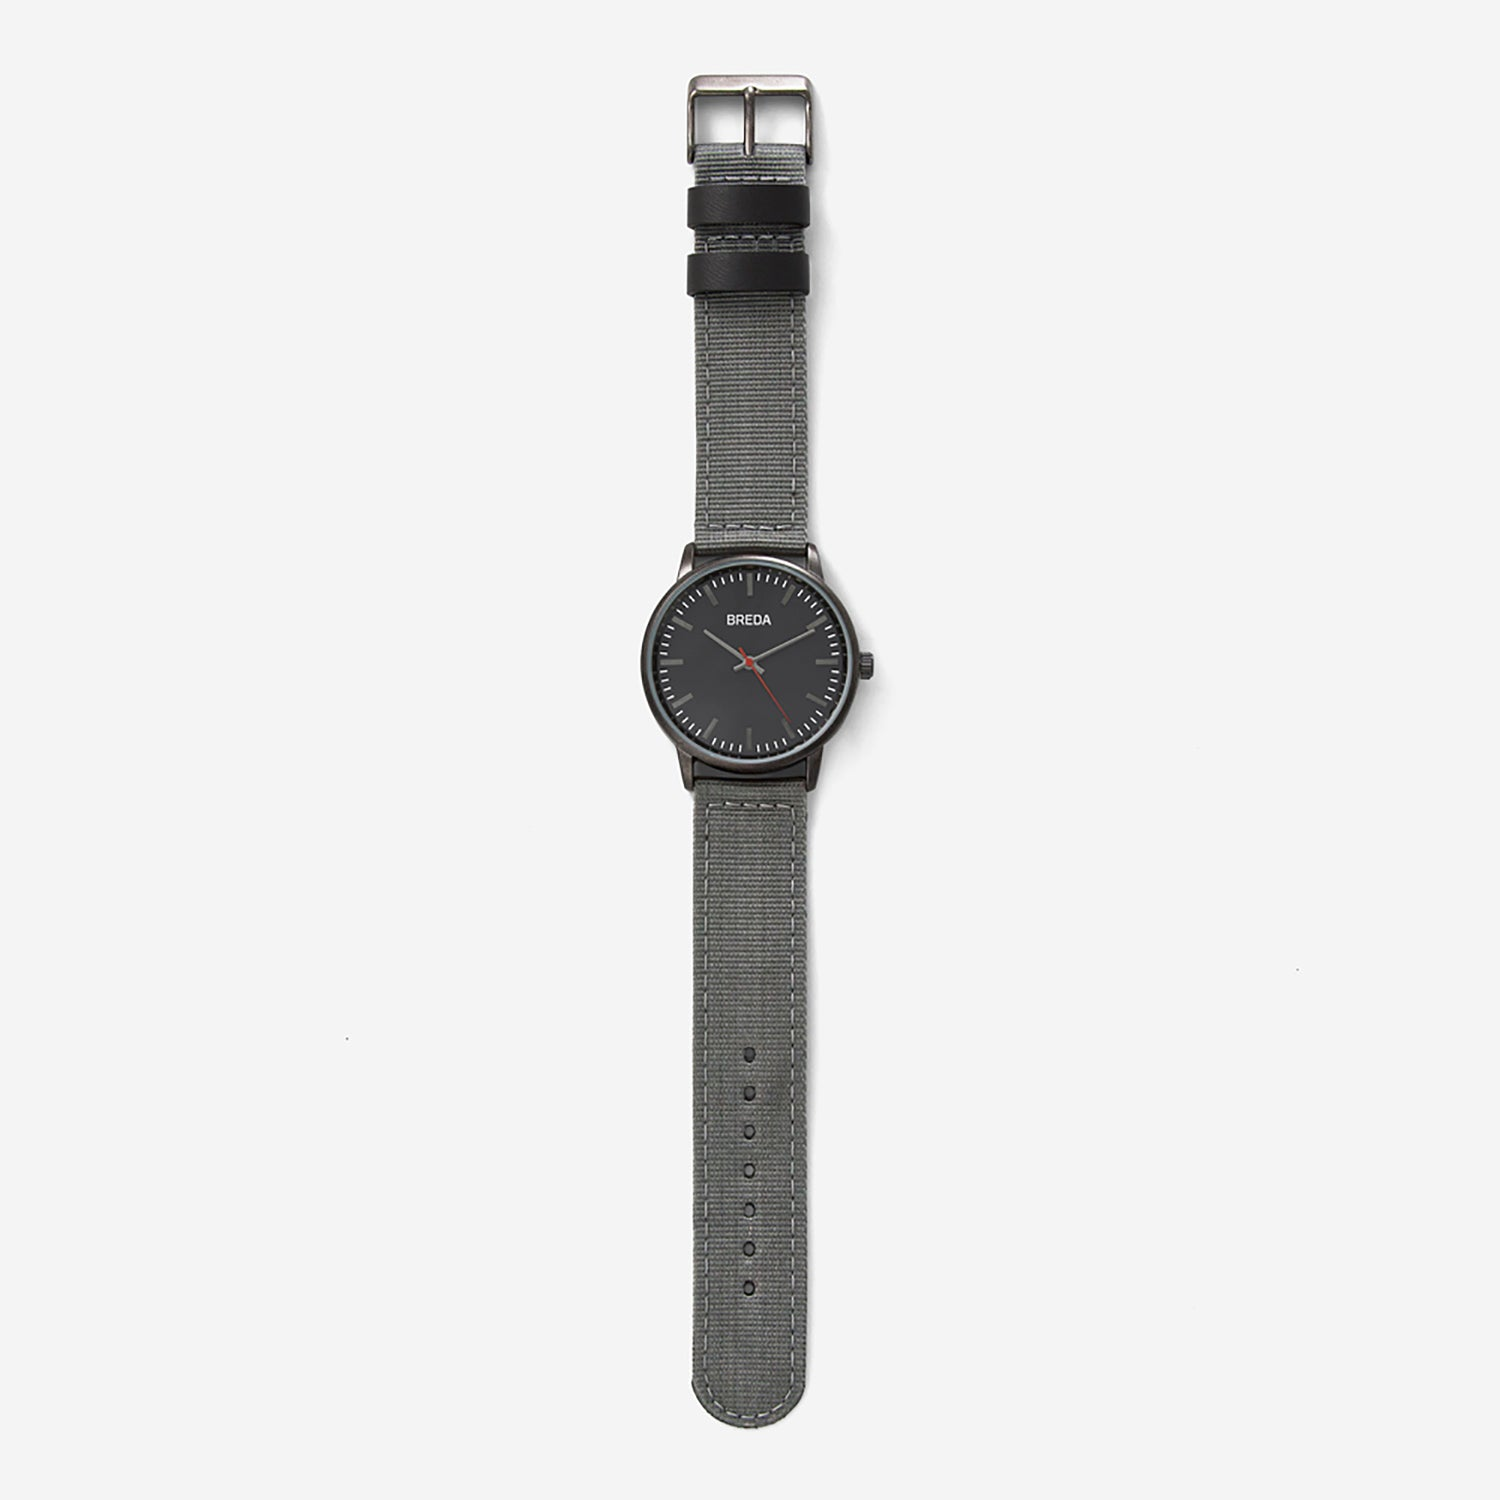 breda-valor-1707a-gunmetal-gray-watch-long